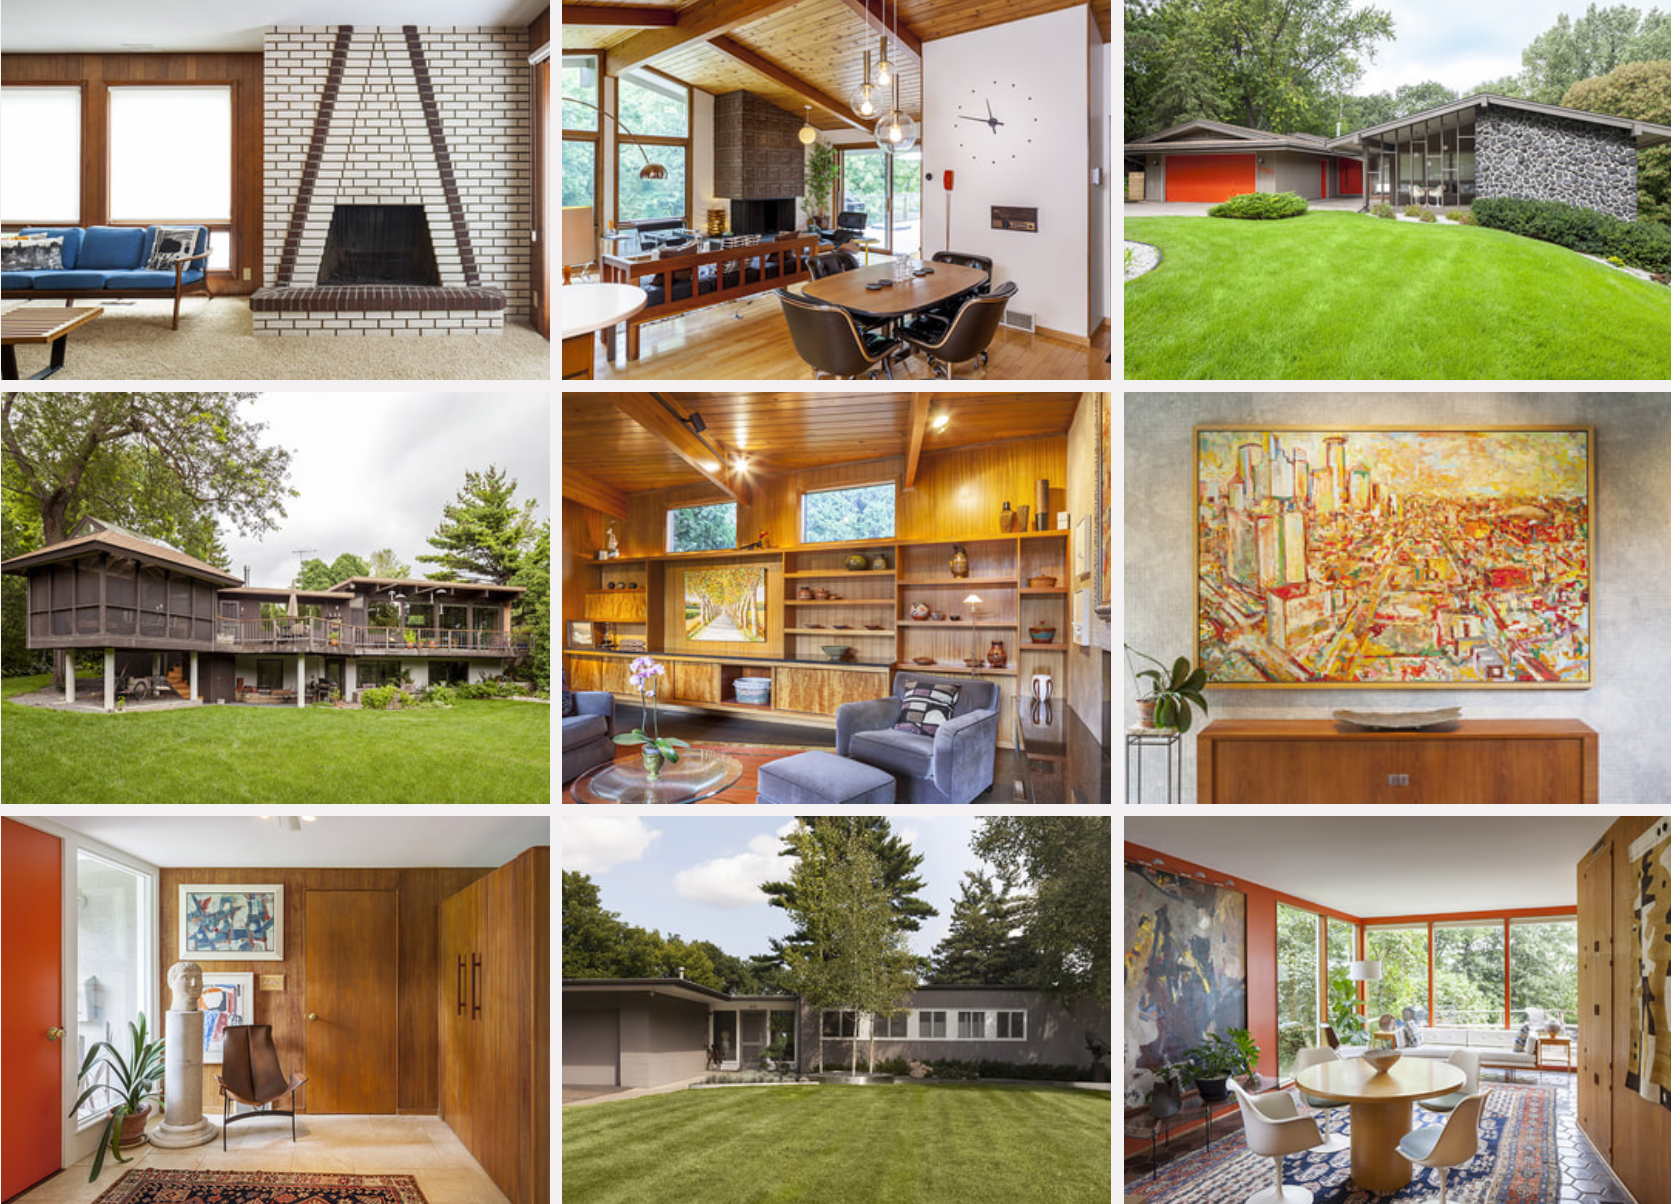 Docomomo US/MN Has Seven Wonderful Modern And Midcentury Modern Homes Open  To Tour Ticket Holders For Tour Day 2017u2026 Saturday, October 7, 2017.